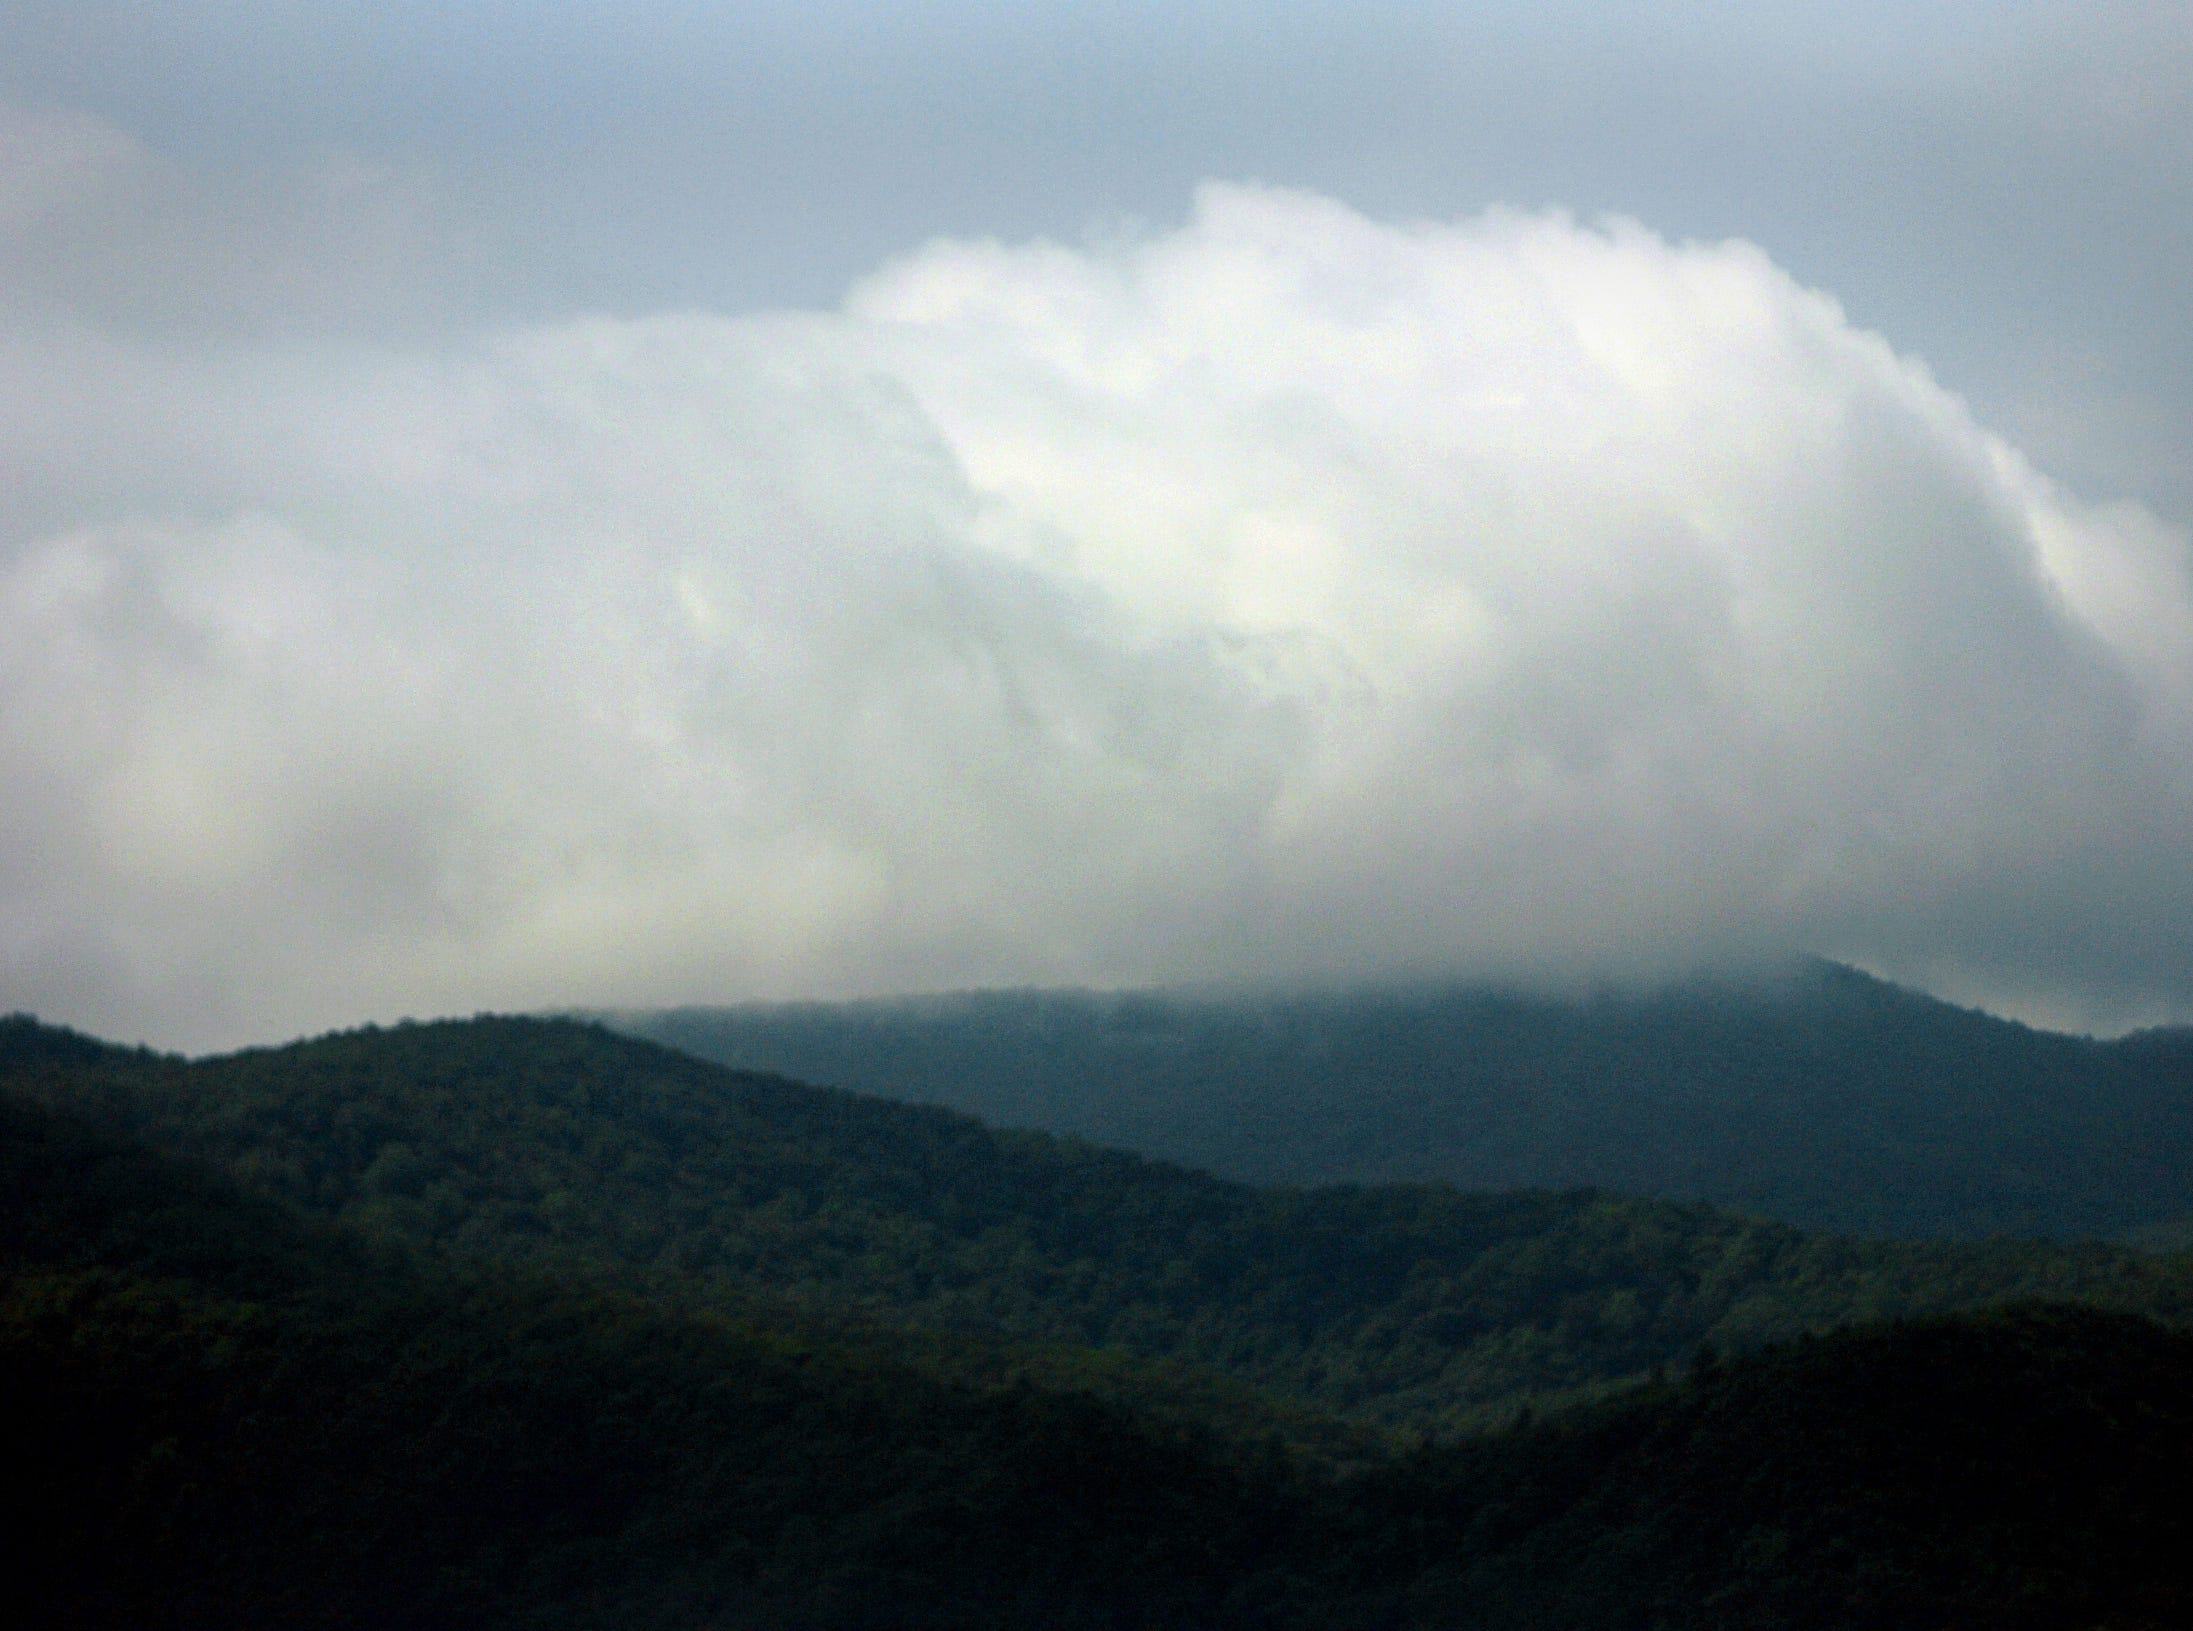 06/28/05  Clouds hang over Cades Cove, which is one of the featured attractions of the Great Smoky Mountain National Park.  It can be easily visited by motorized transportation, but is often congested.  Five alternatives are on the table to lessen traffic problems and range from doing nothing to a mandatory shuttle system.